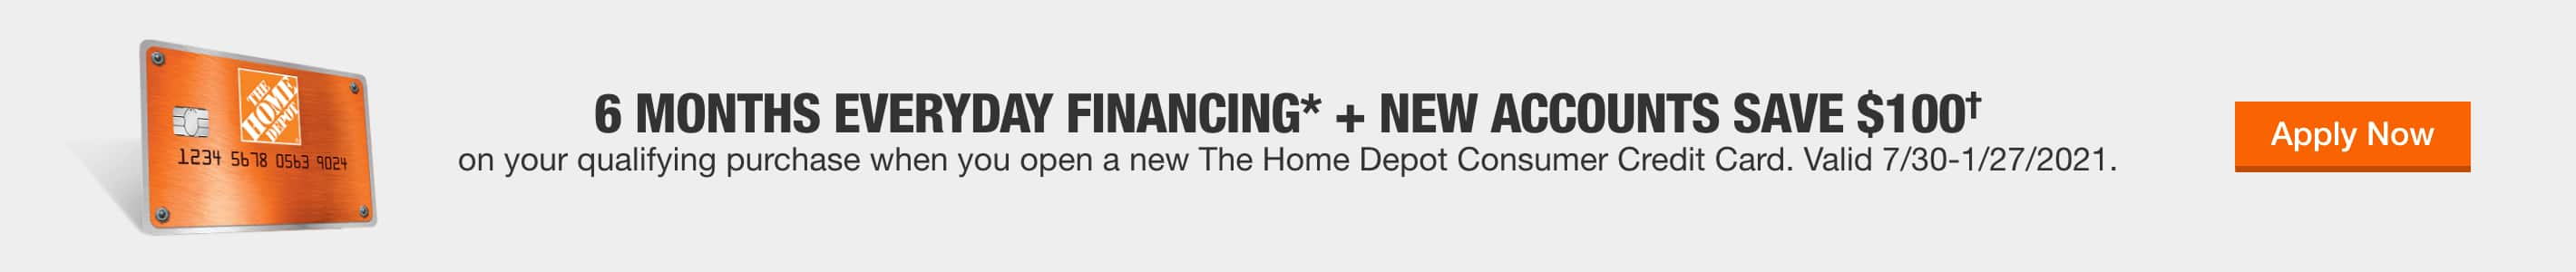 6 Months Everyday Financing* on your qualifying purchase when you open a new The Home Depot Consumer Credit Card. Valid 7/30 - 1/27/21.